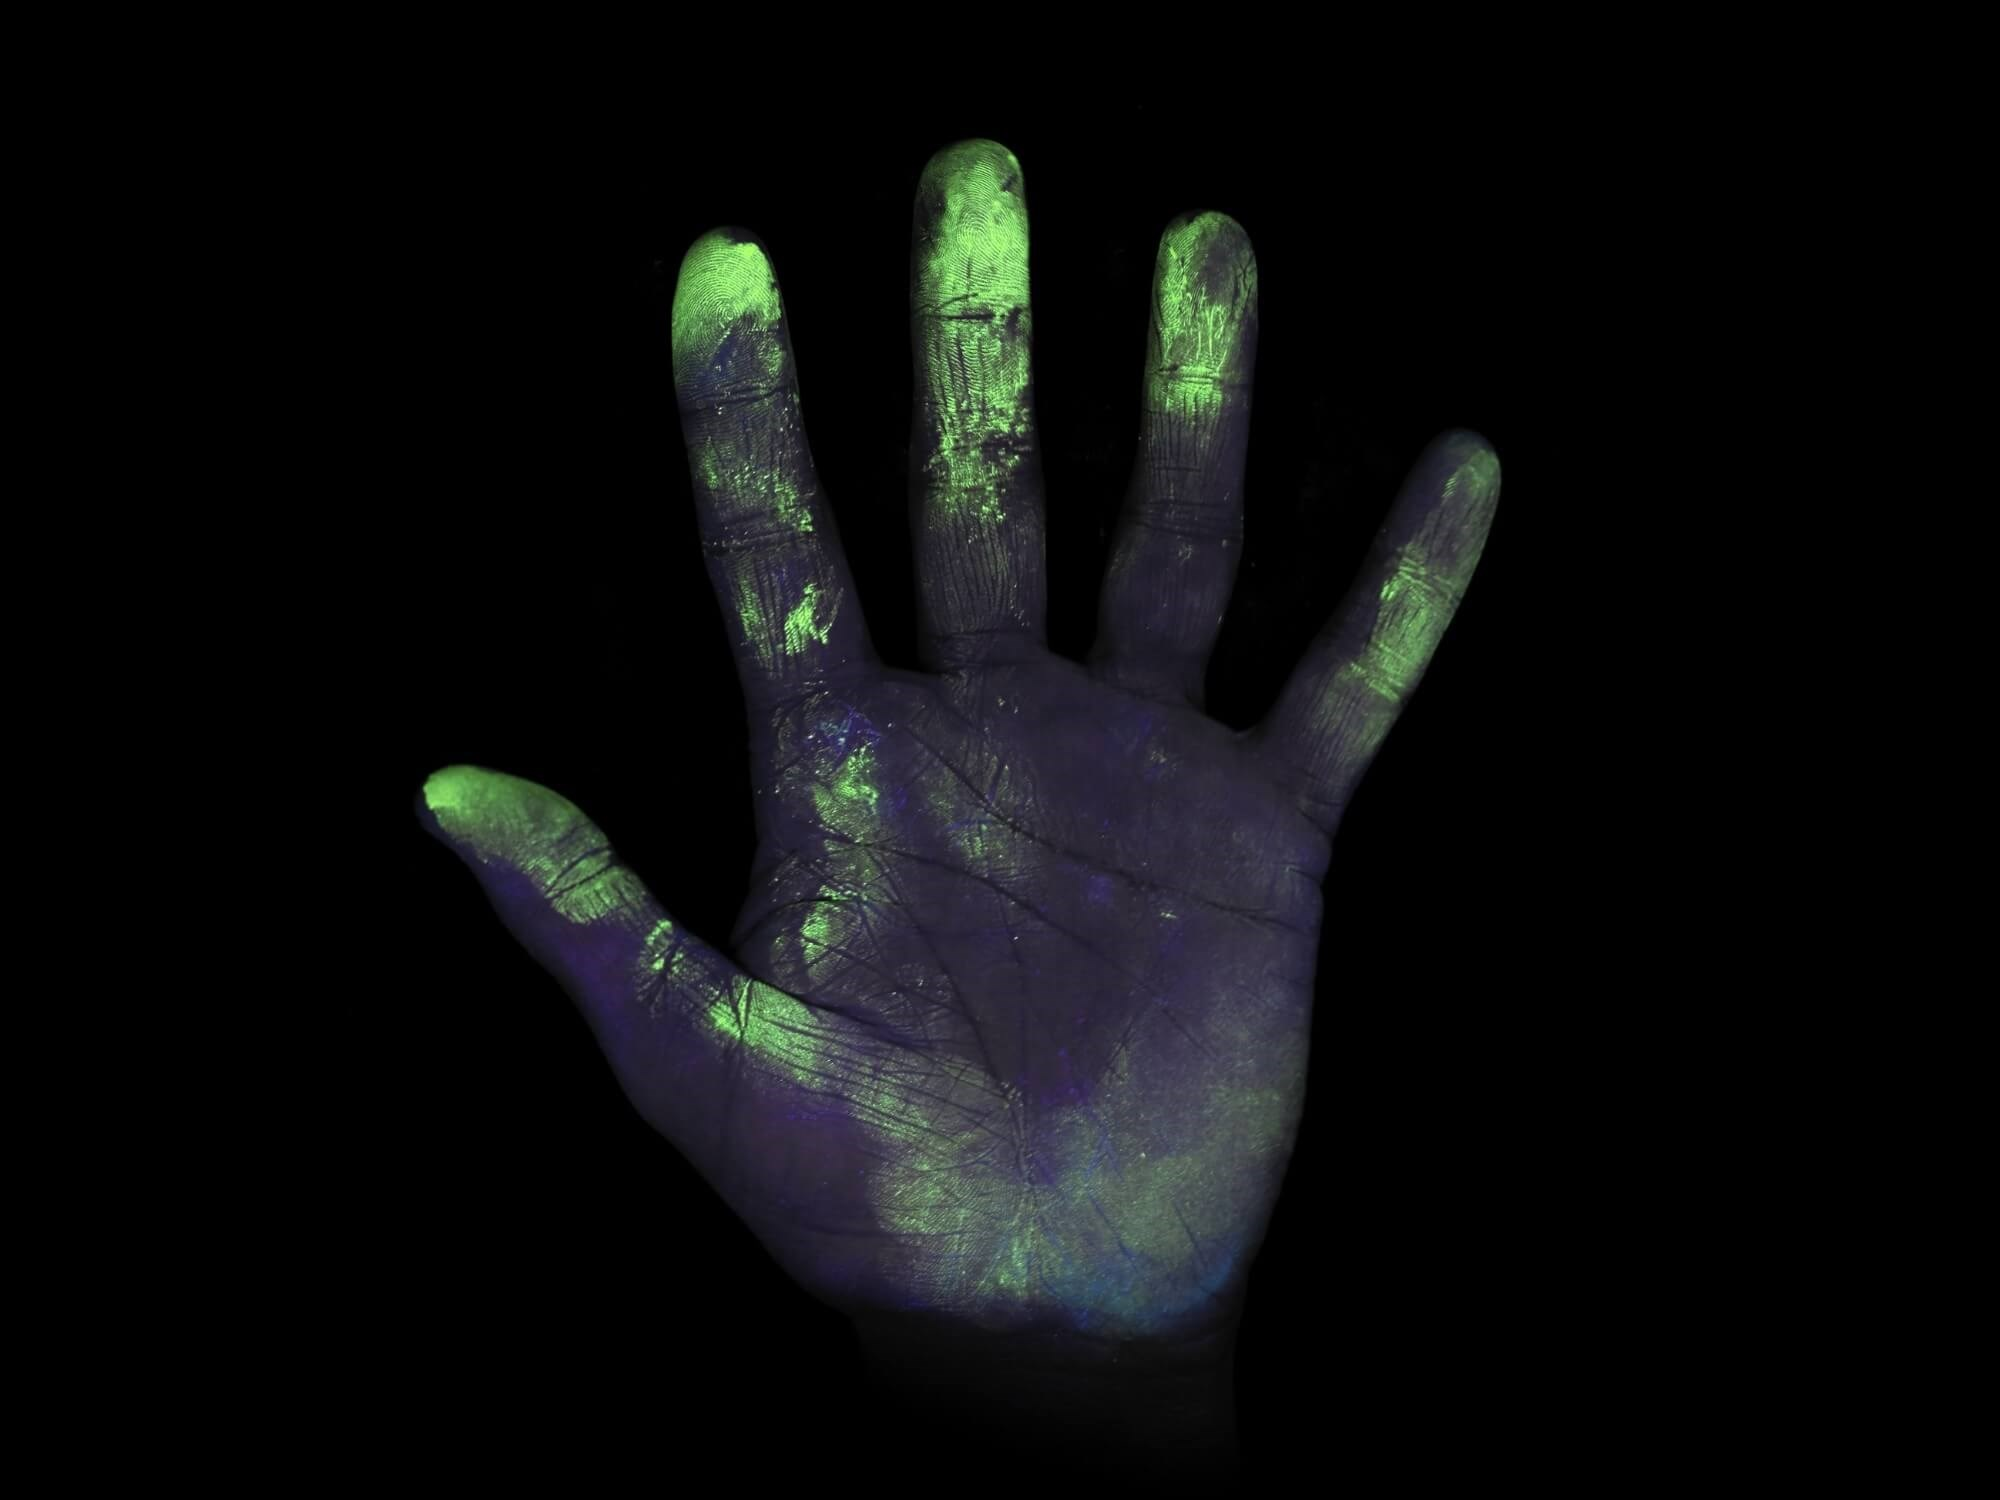 Hands Are Vehicles for Transmission of Streptococcus pneumoniae